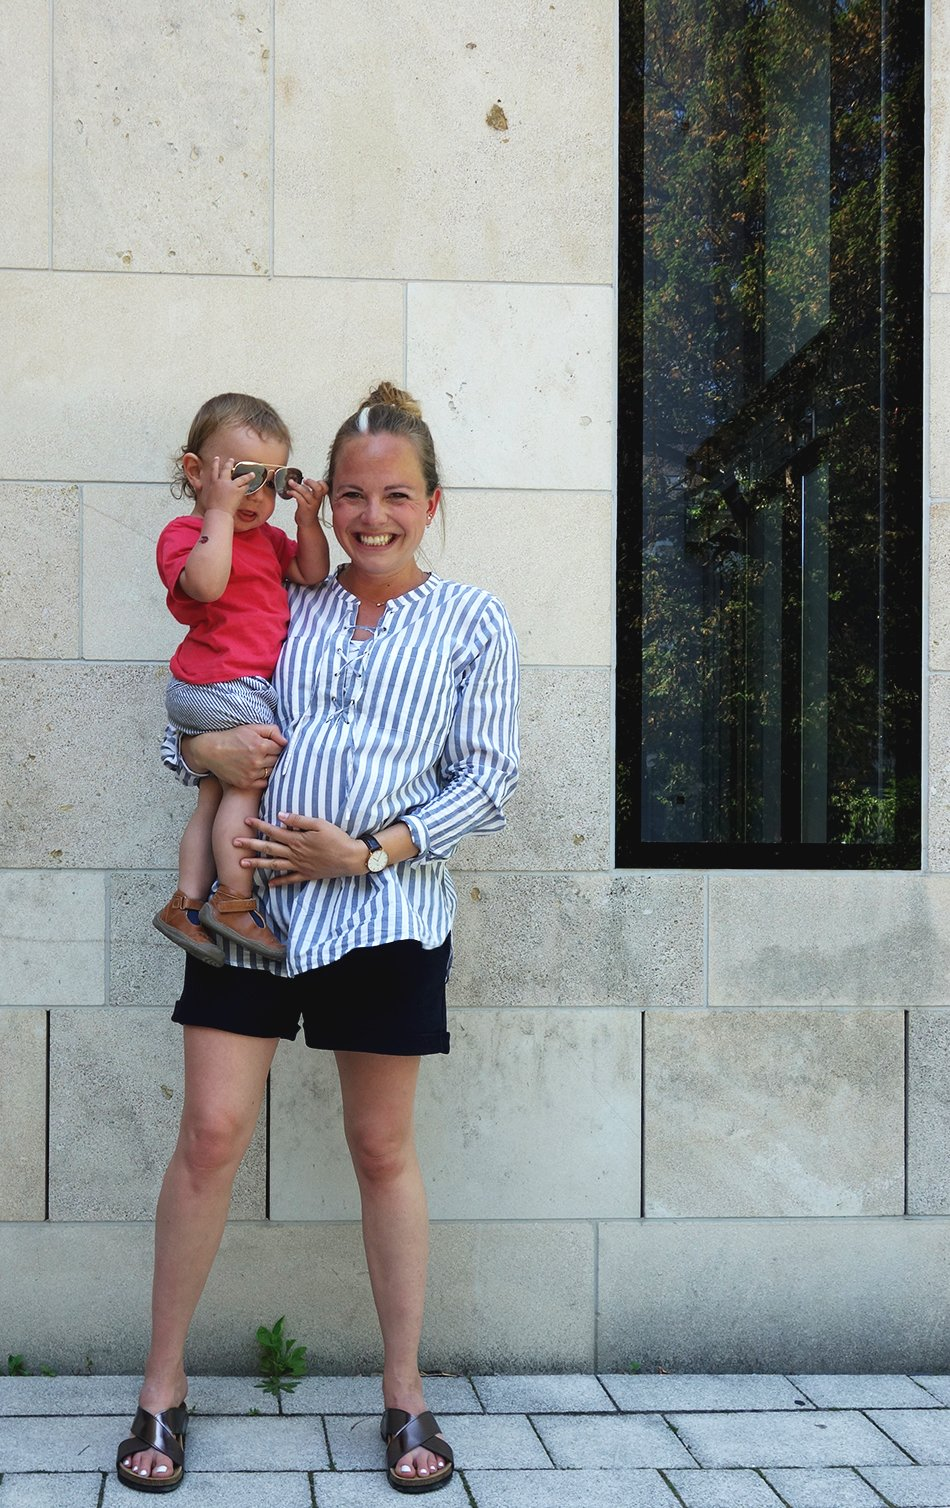 frauke, karlsruhe, mamablog, haus solms, streifen, umstandsmode, schwangerschaftsmode, style the bump, mum and son, family, quality time, styleblogger, vegan shoes, kinderschuhe